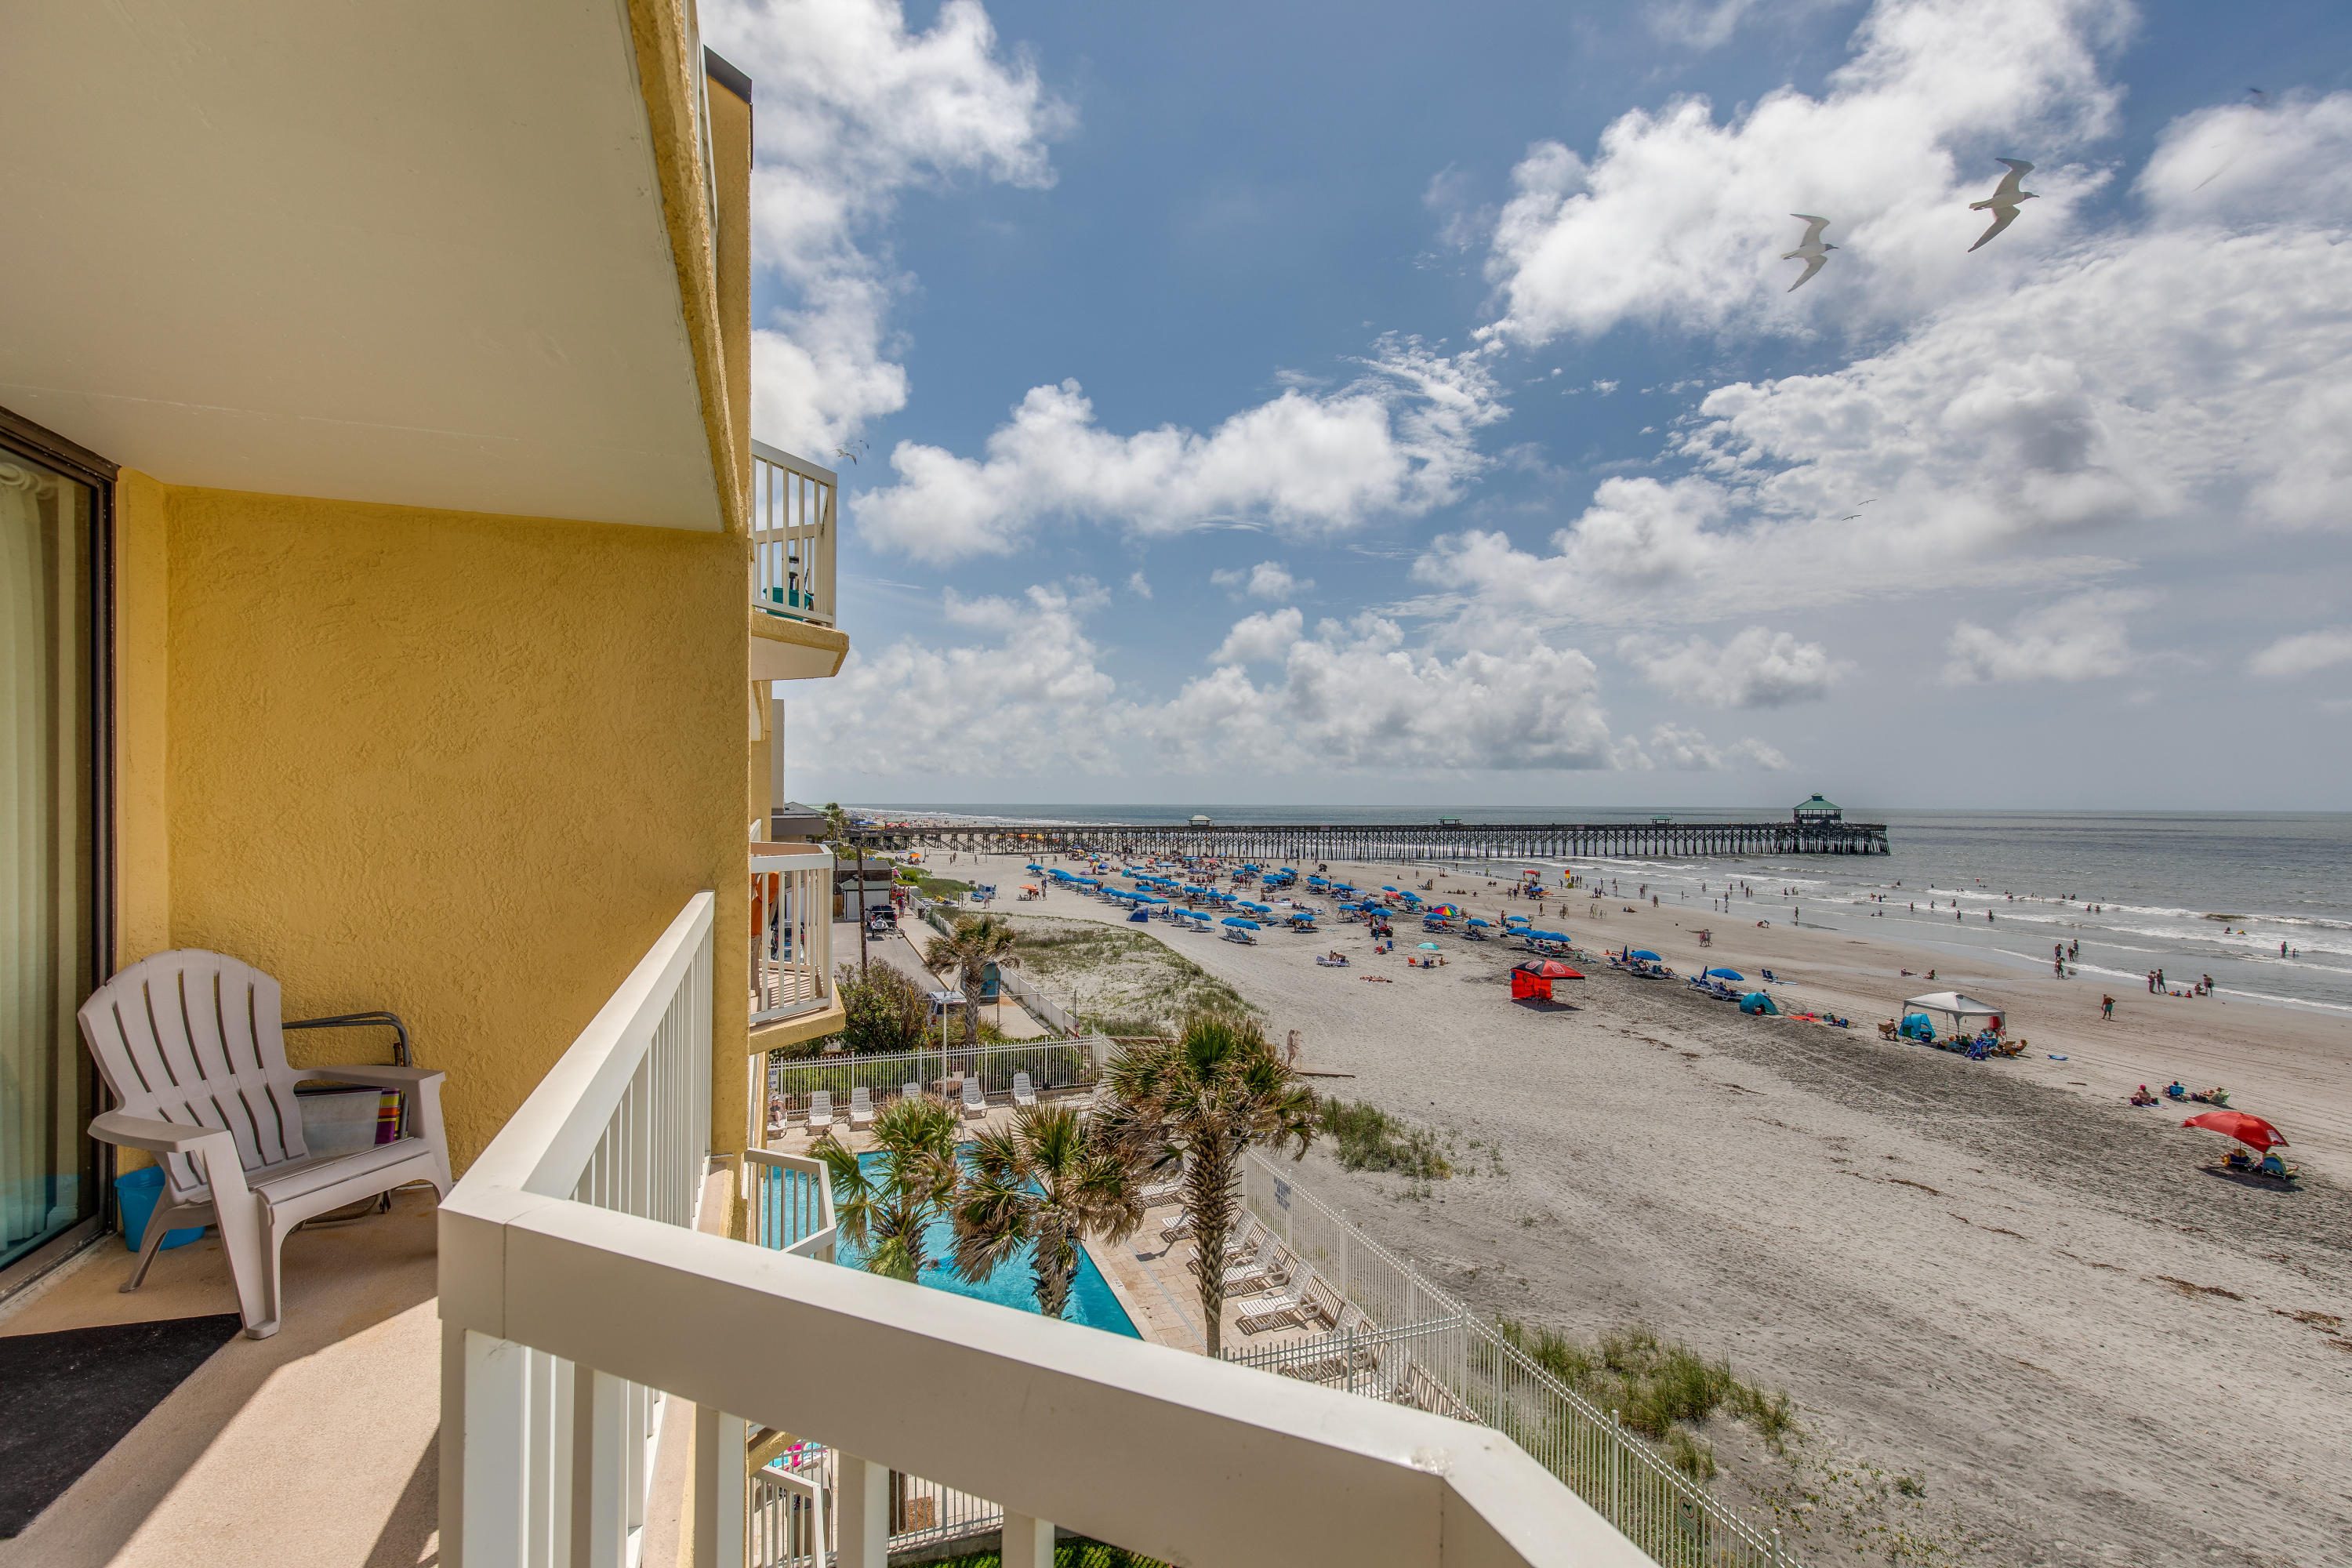 Charleston Oceanfront Villas Homes For Sale - 201 Arctic, Folly Beach, SC - 9